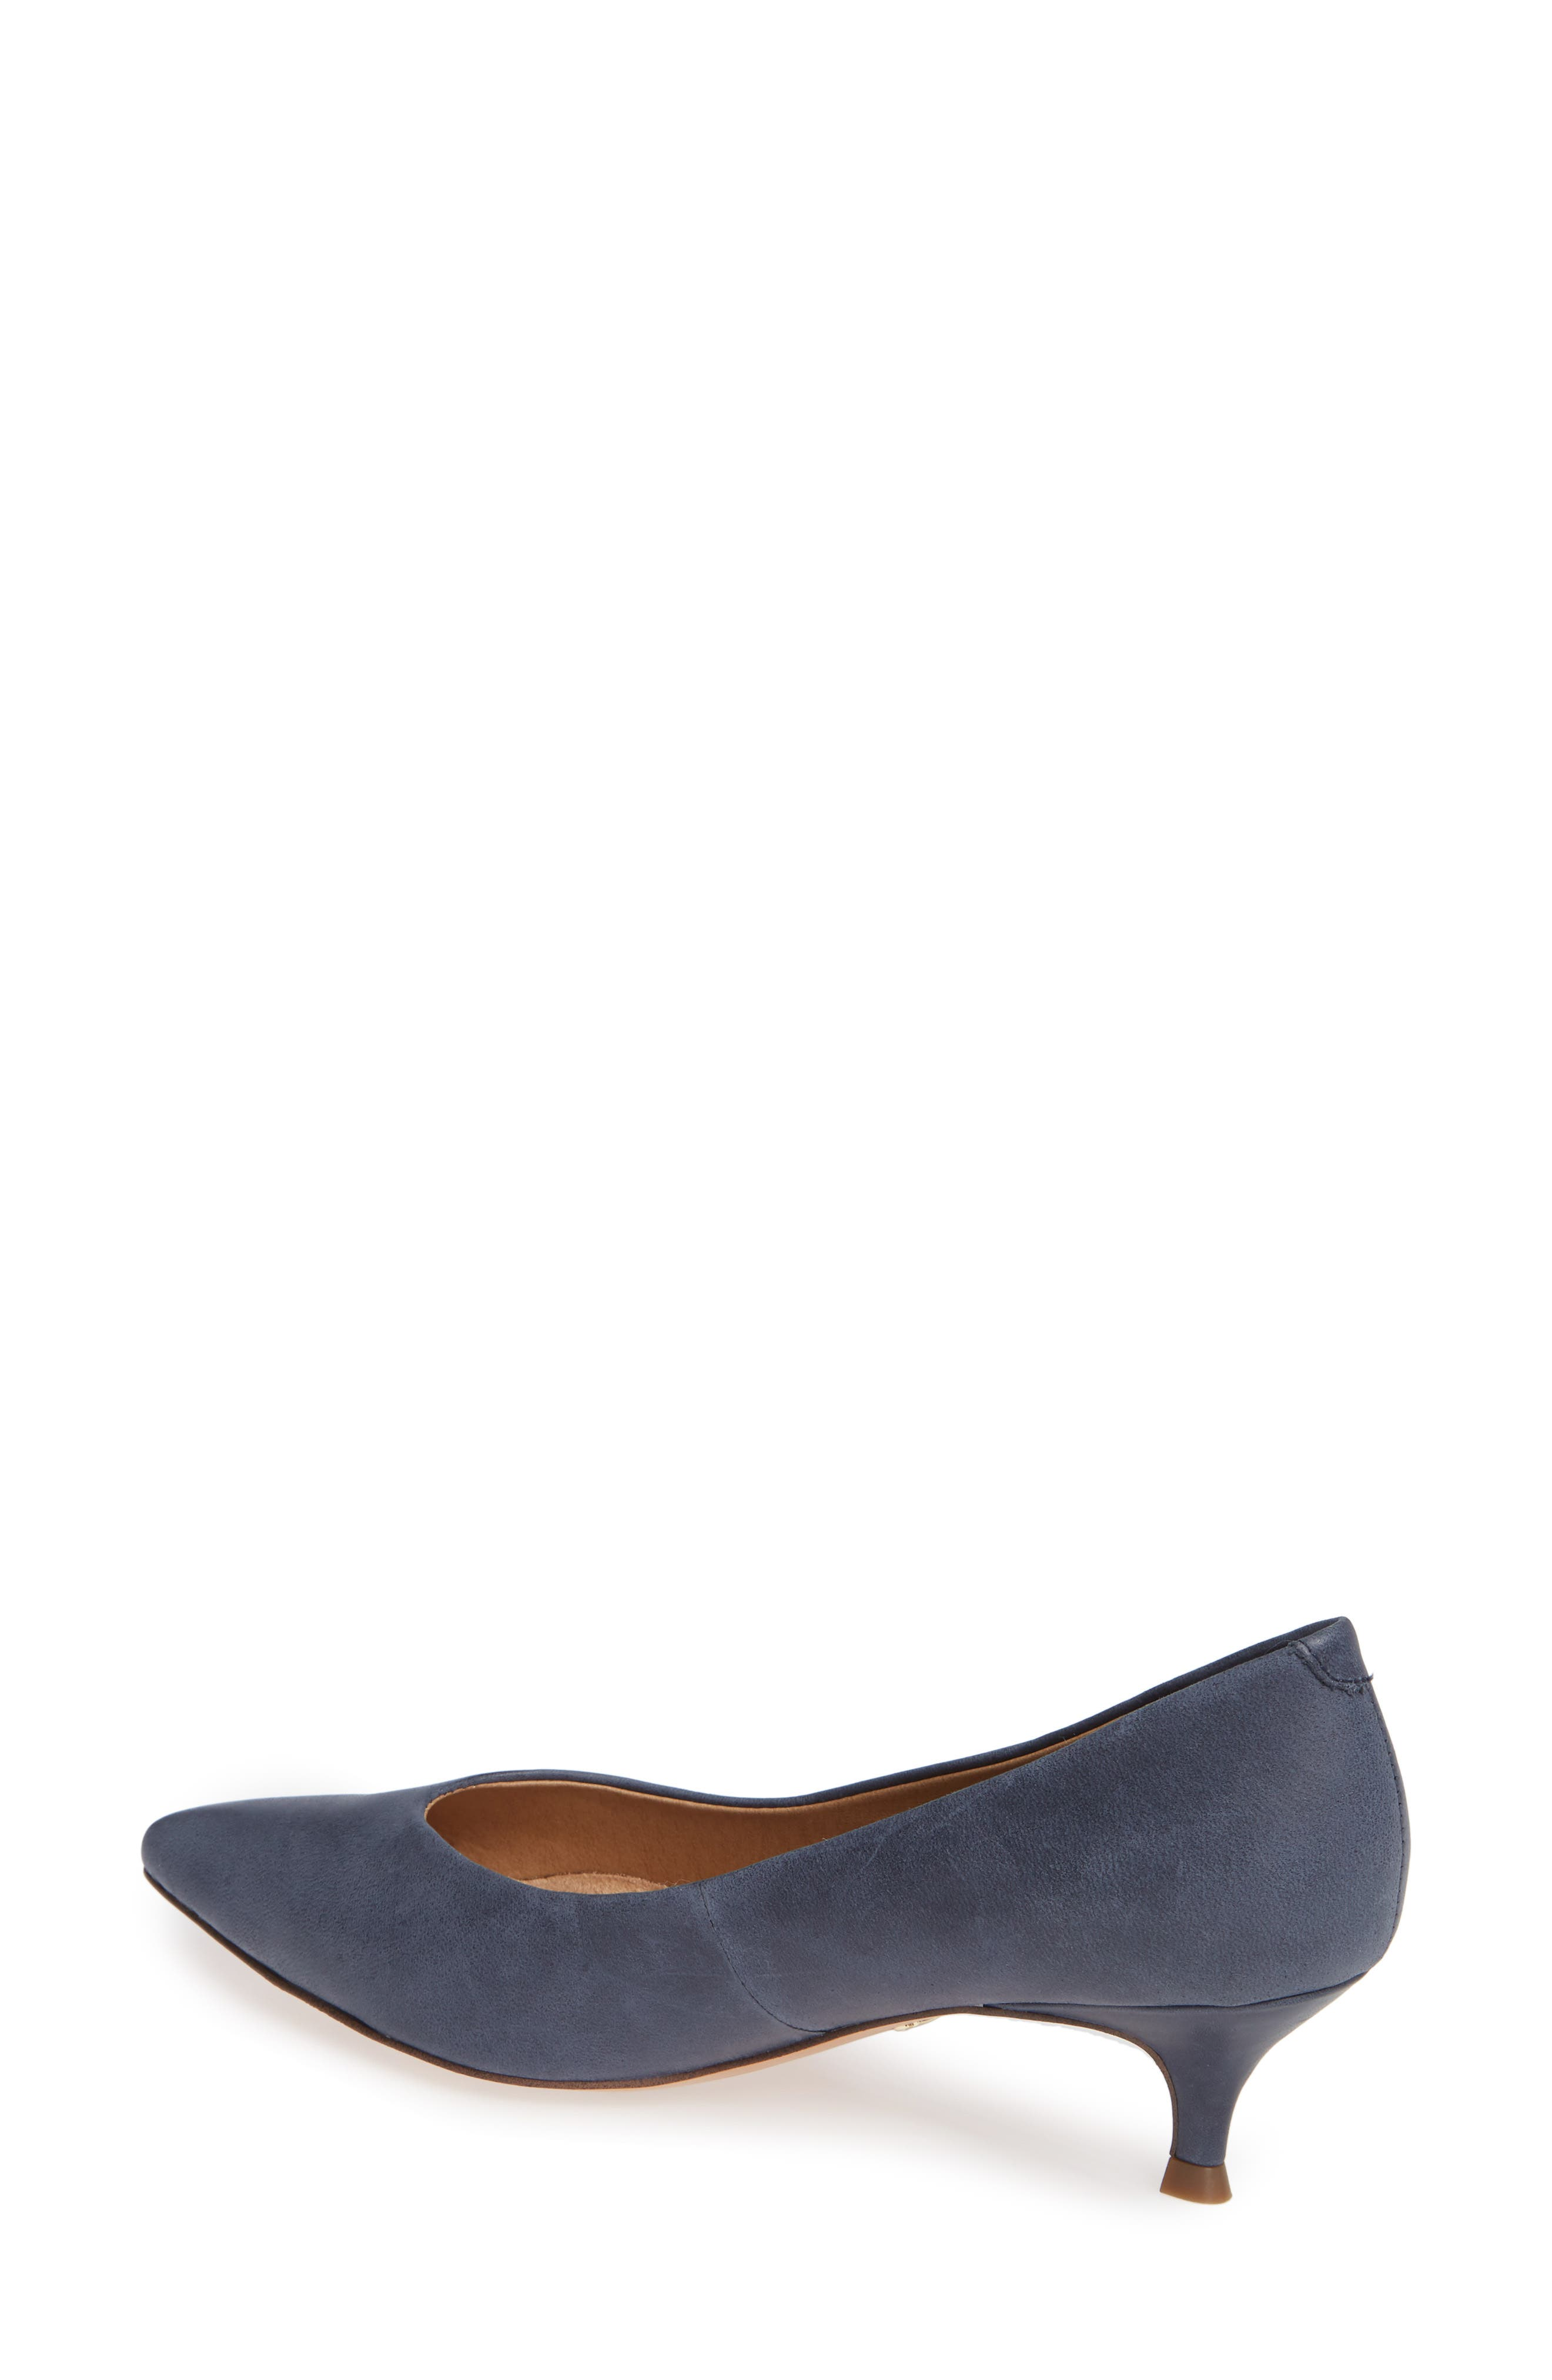 VIONIC, Josie Kitten Heel Pump, Alternate thumbnail 2, color, NAVY LEATHER